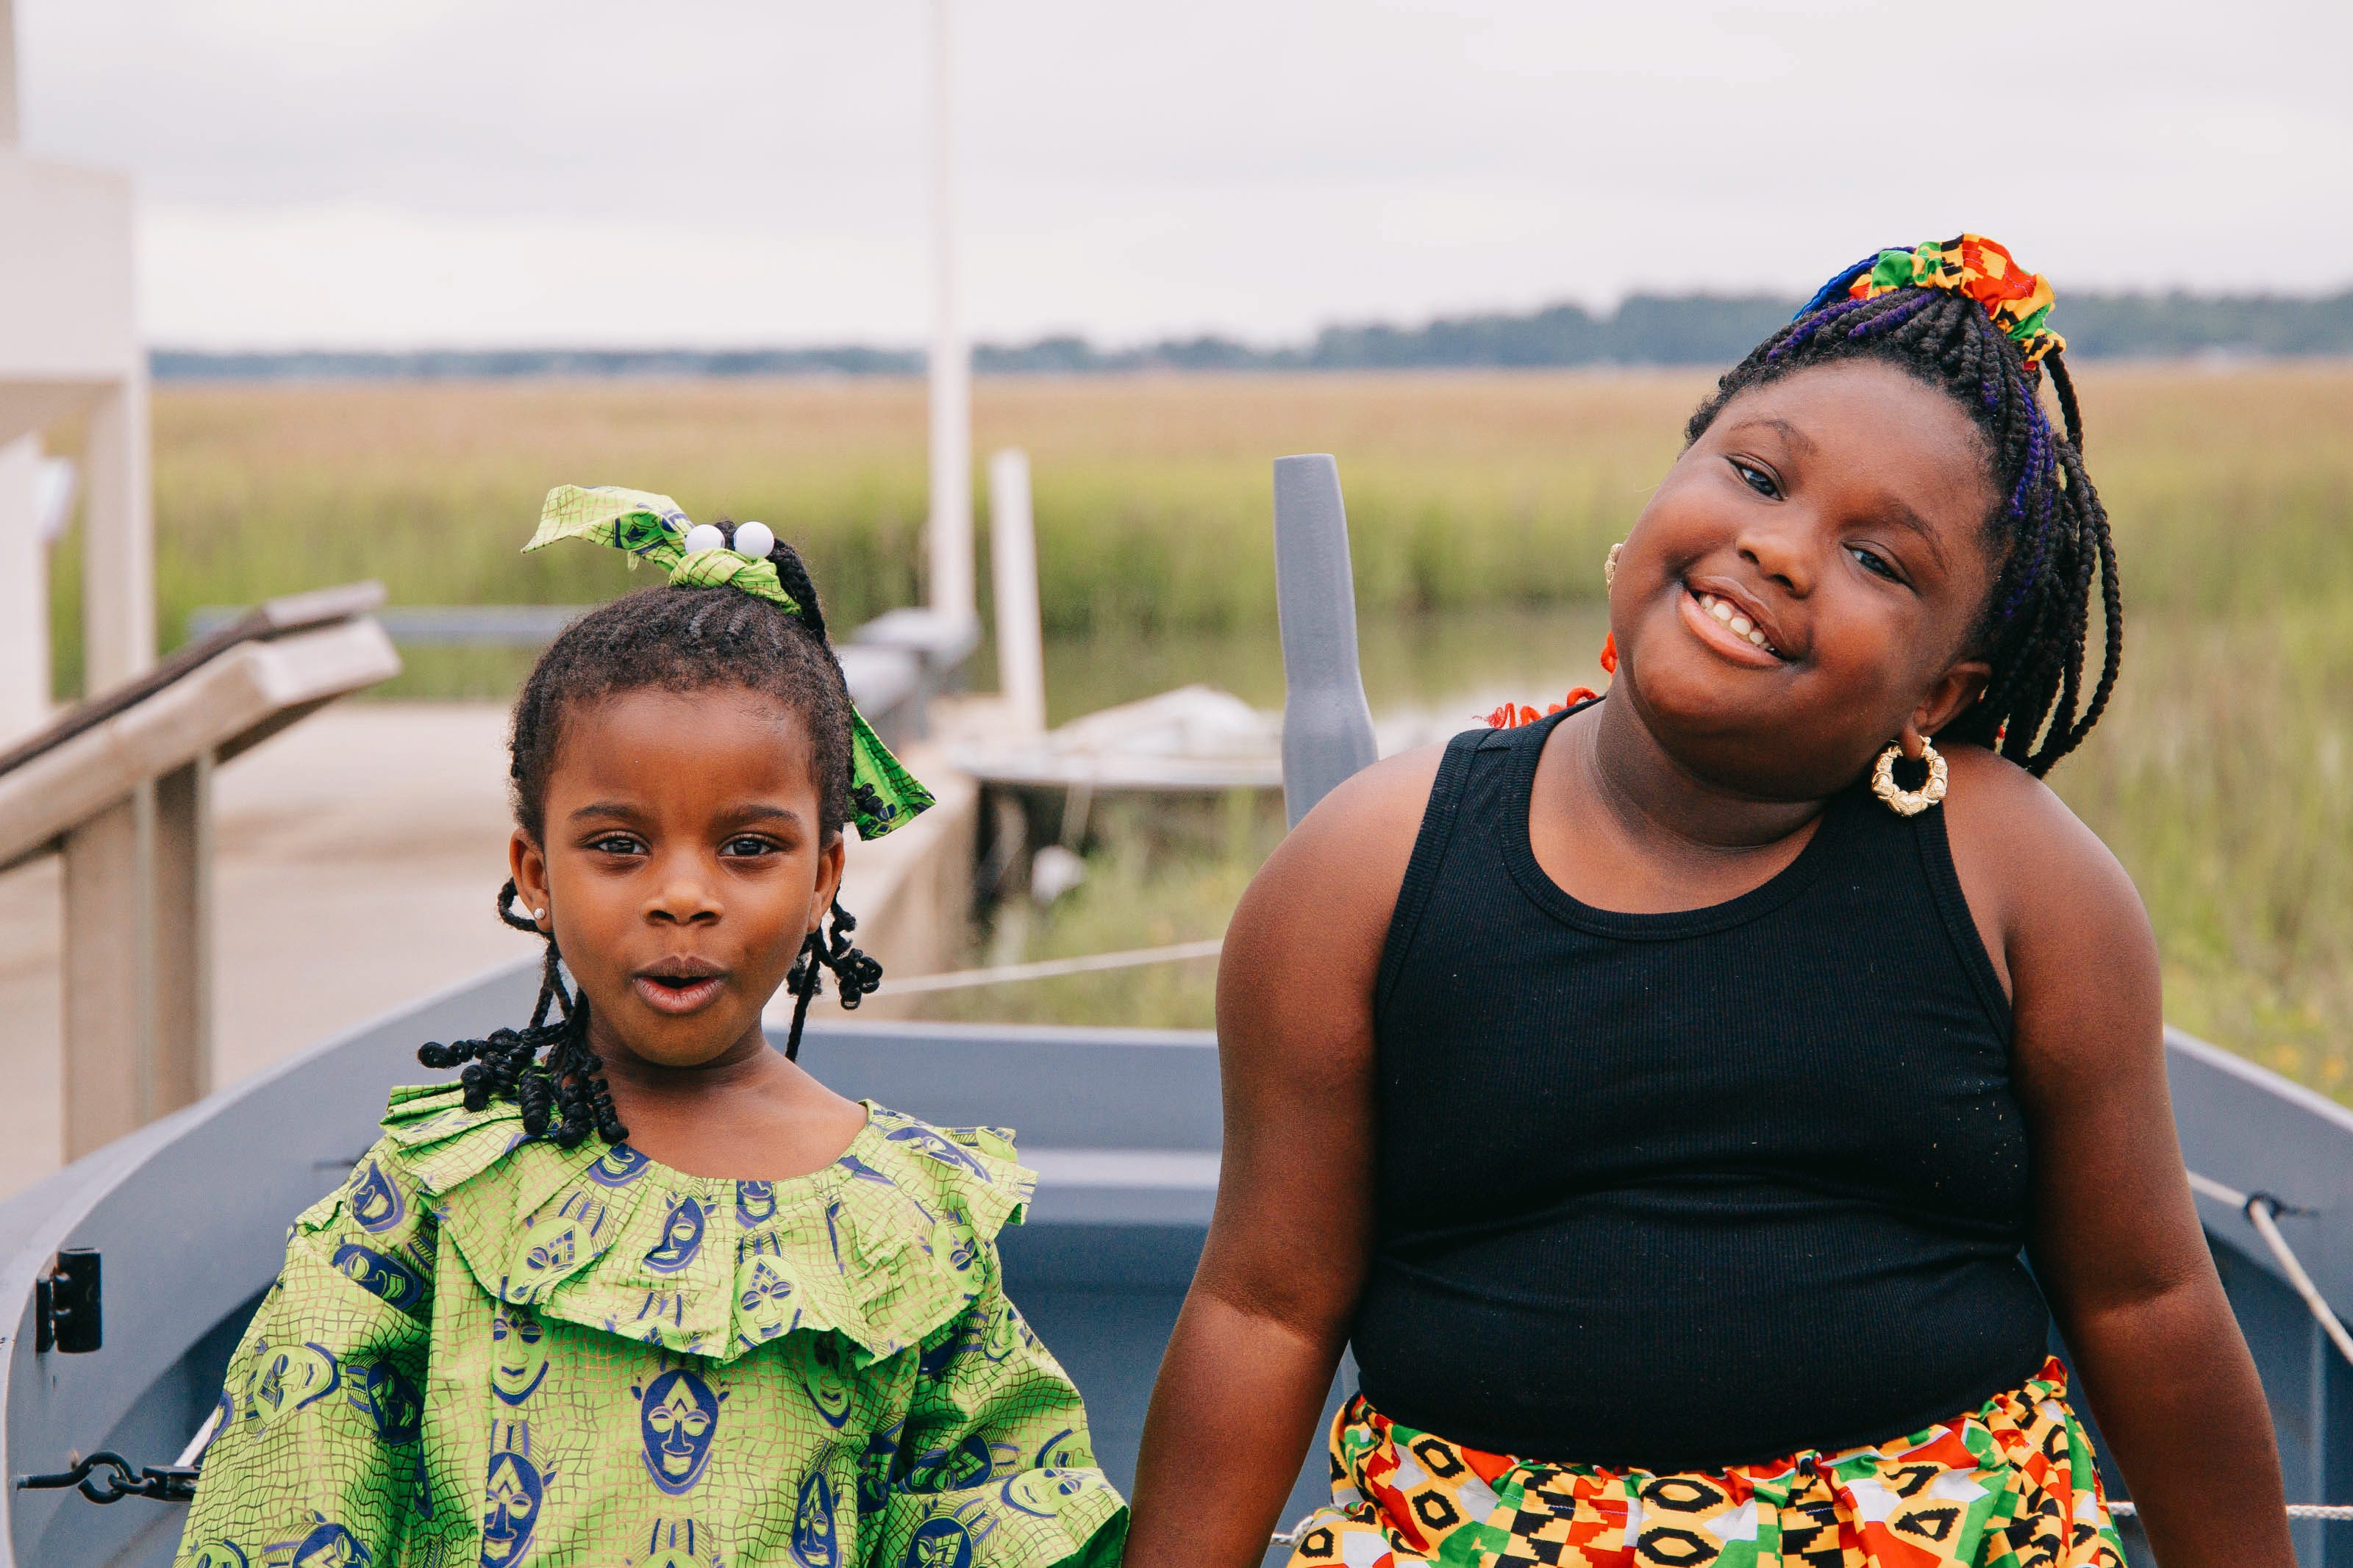 Lemeirah Rouse and Noelle Mugin at Pin Point Heritage Museum in Savannah.